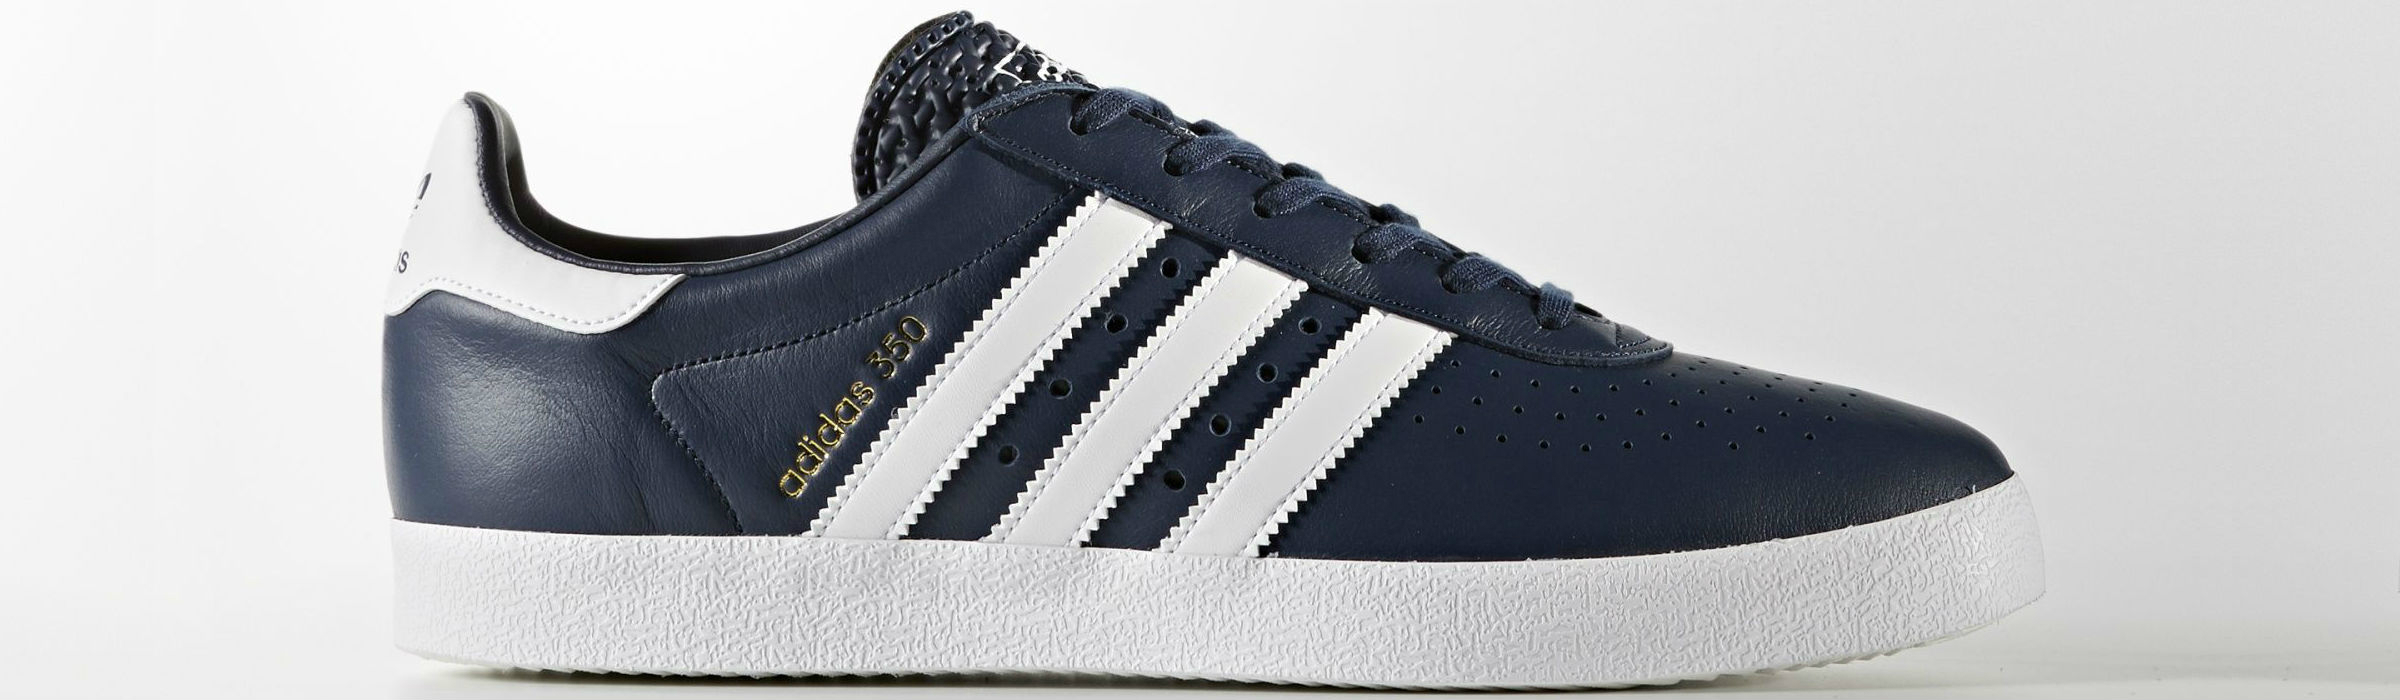 Adidas 350 Shoes Collegiate Navy Footwear White Gold Metalic Full